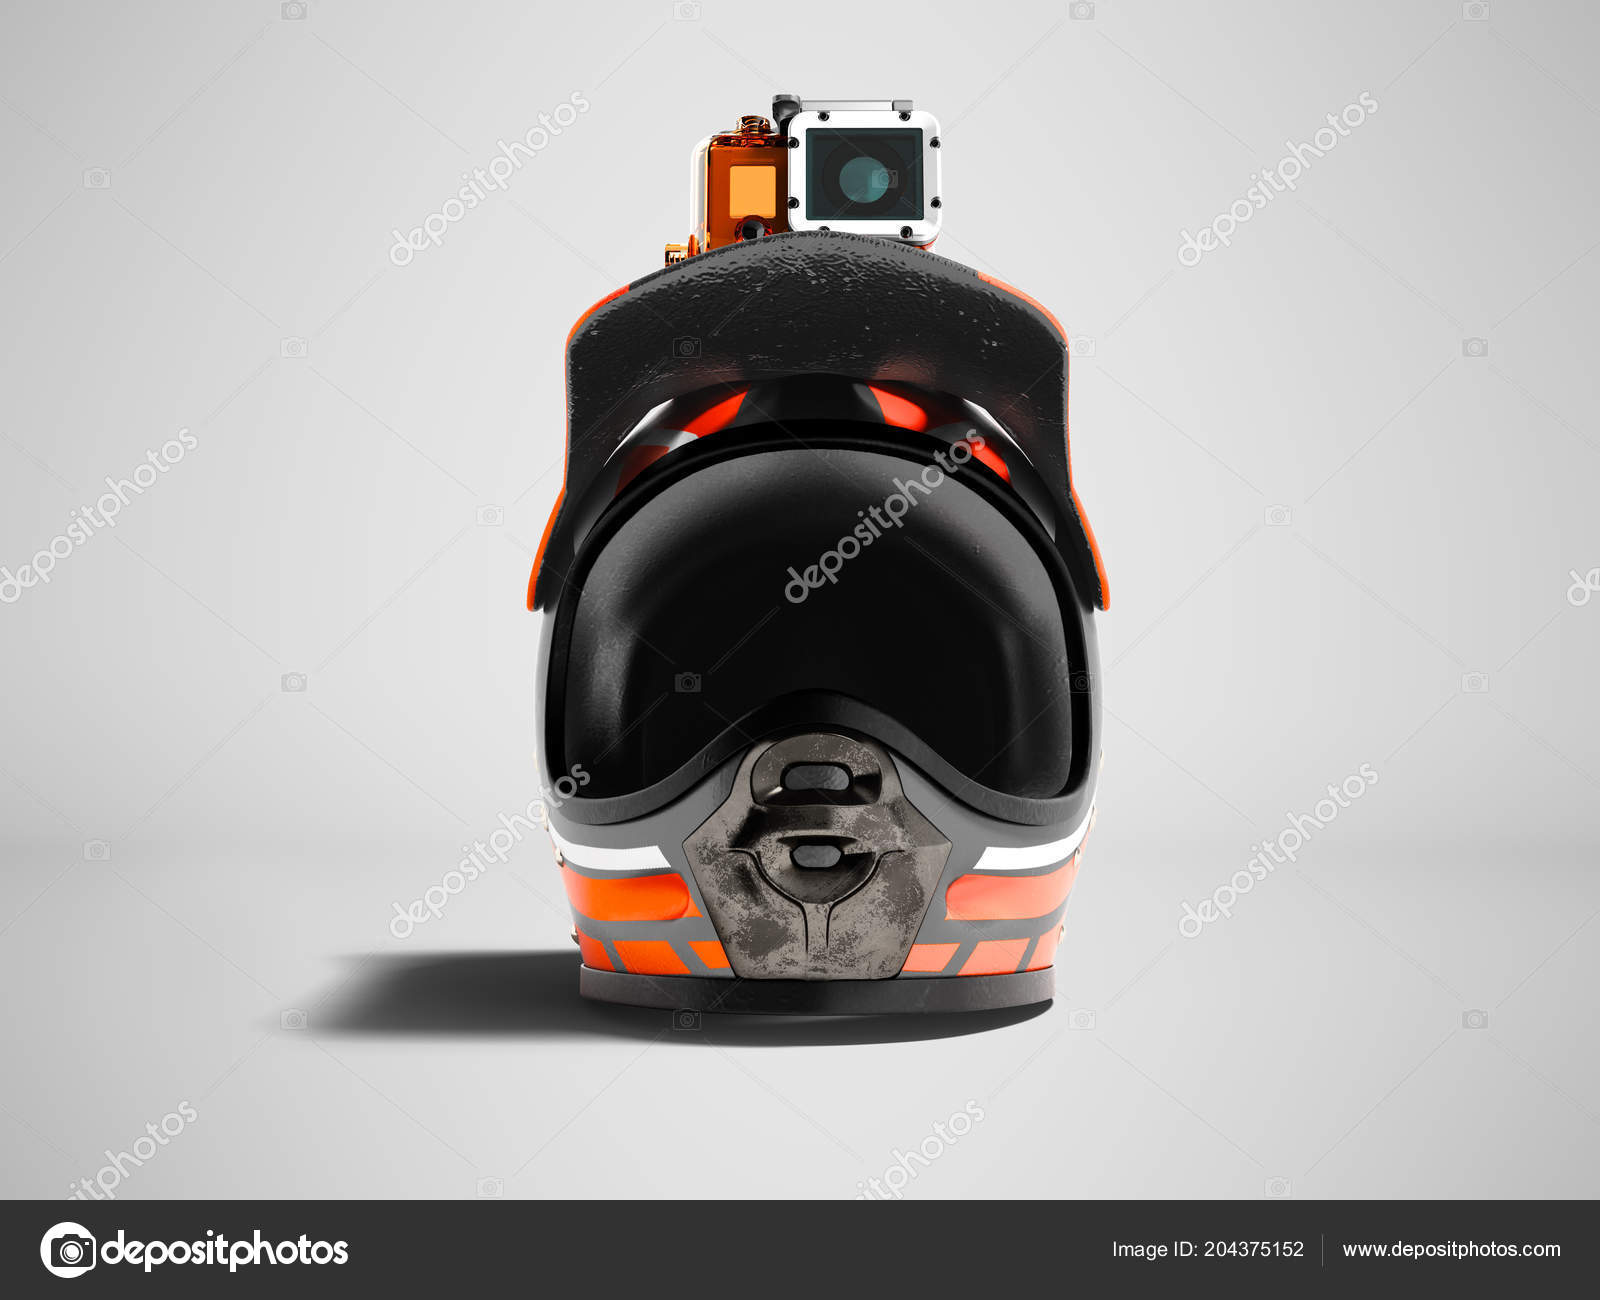 d1ddb8d920a Casque Moto Orange Moderne Avec Caméra Action Orange Face Render ...